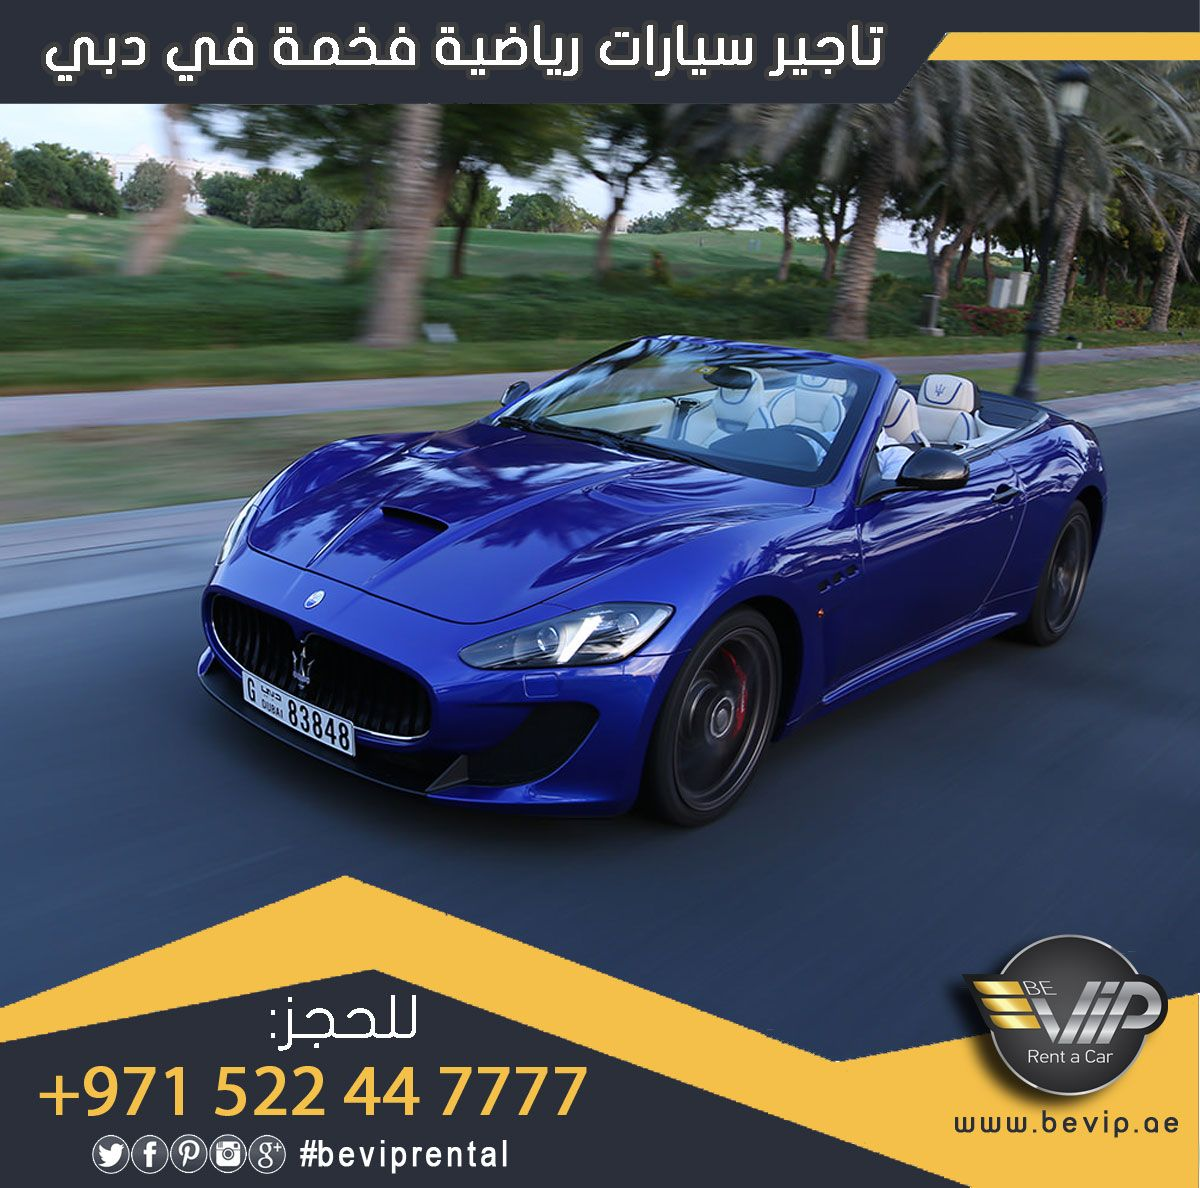 The New Maserati Grancabrio Now Available For Rent From Be Vip Rent A Car In Dubai Maserati Is About To Drive Elegantly Maserati Luxury Car Rental Car Rental